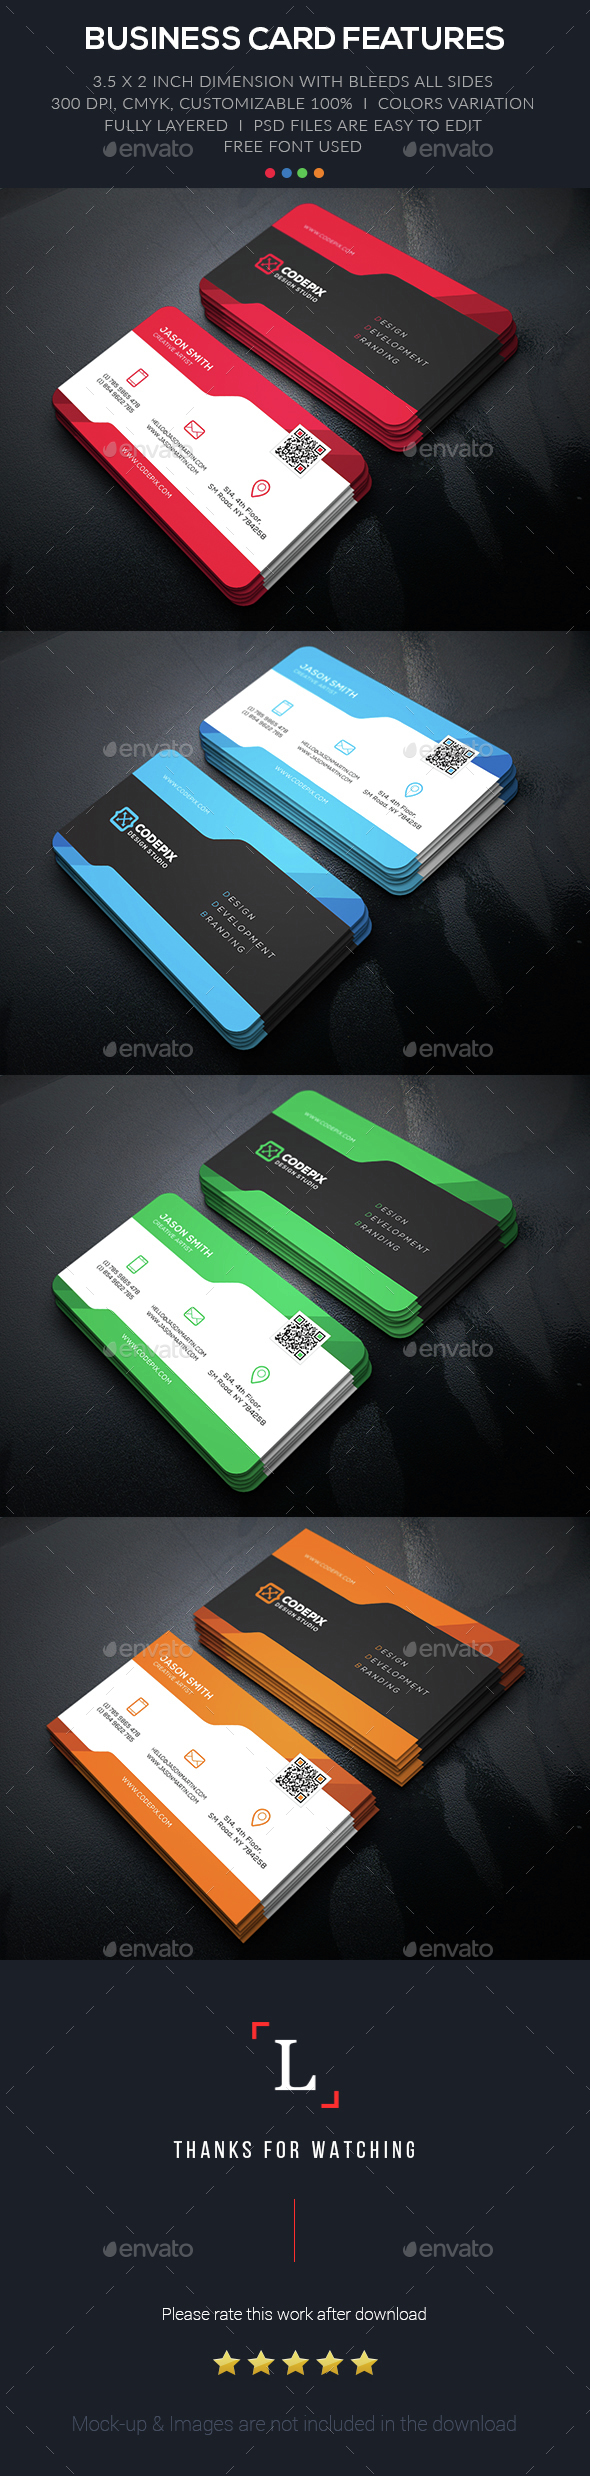 Design Corporate Business Card - Business Cards Print Templates